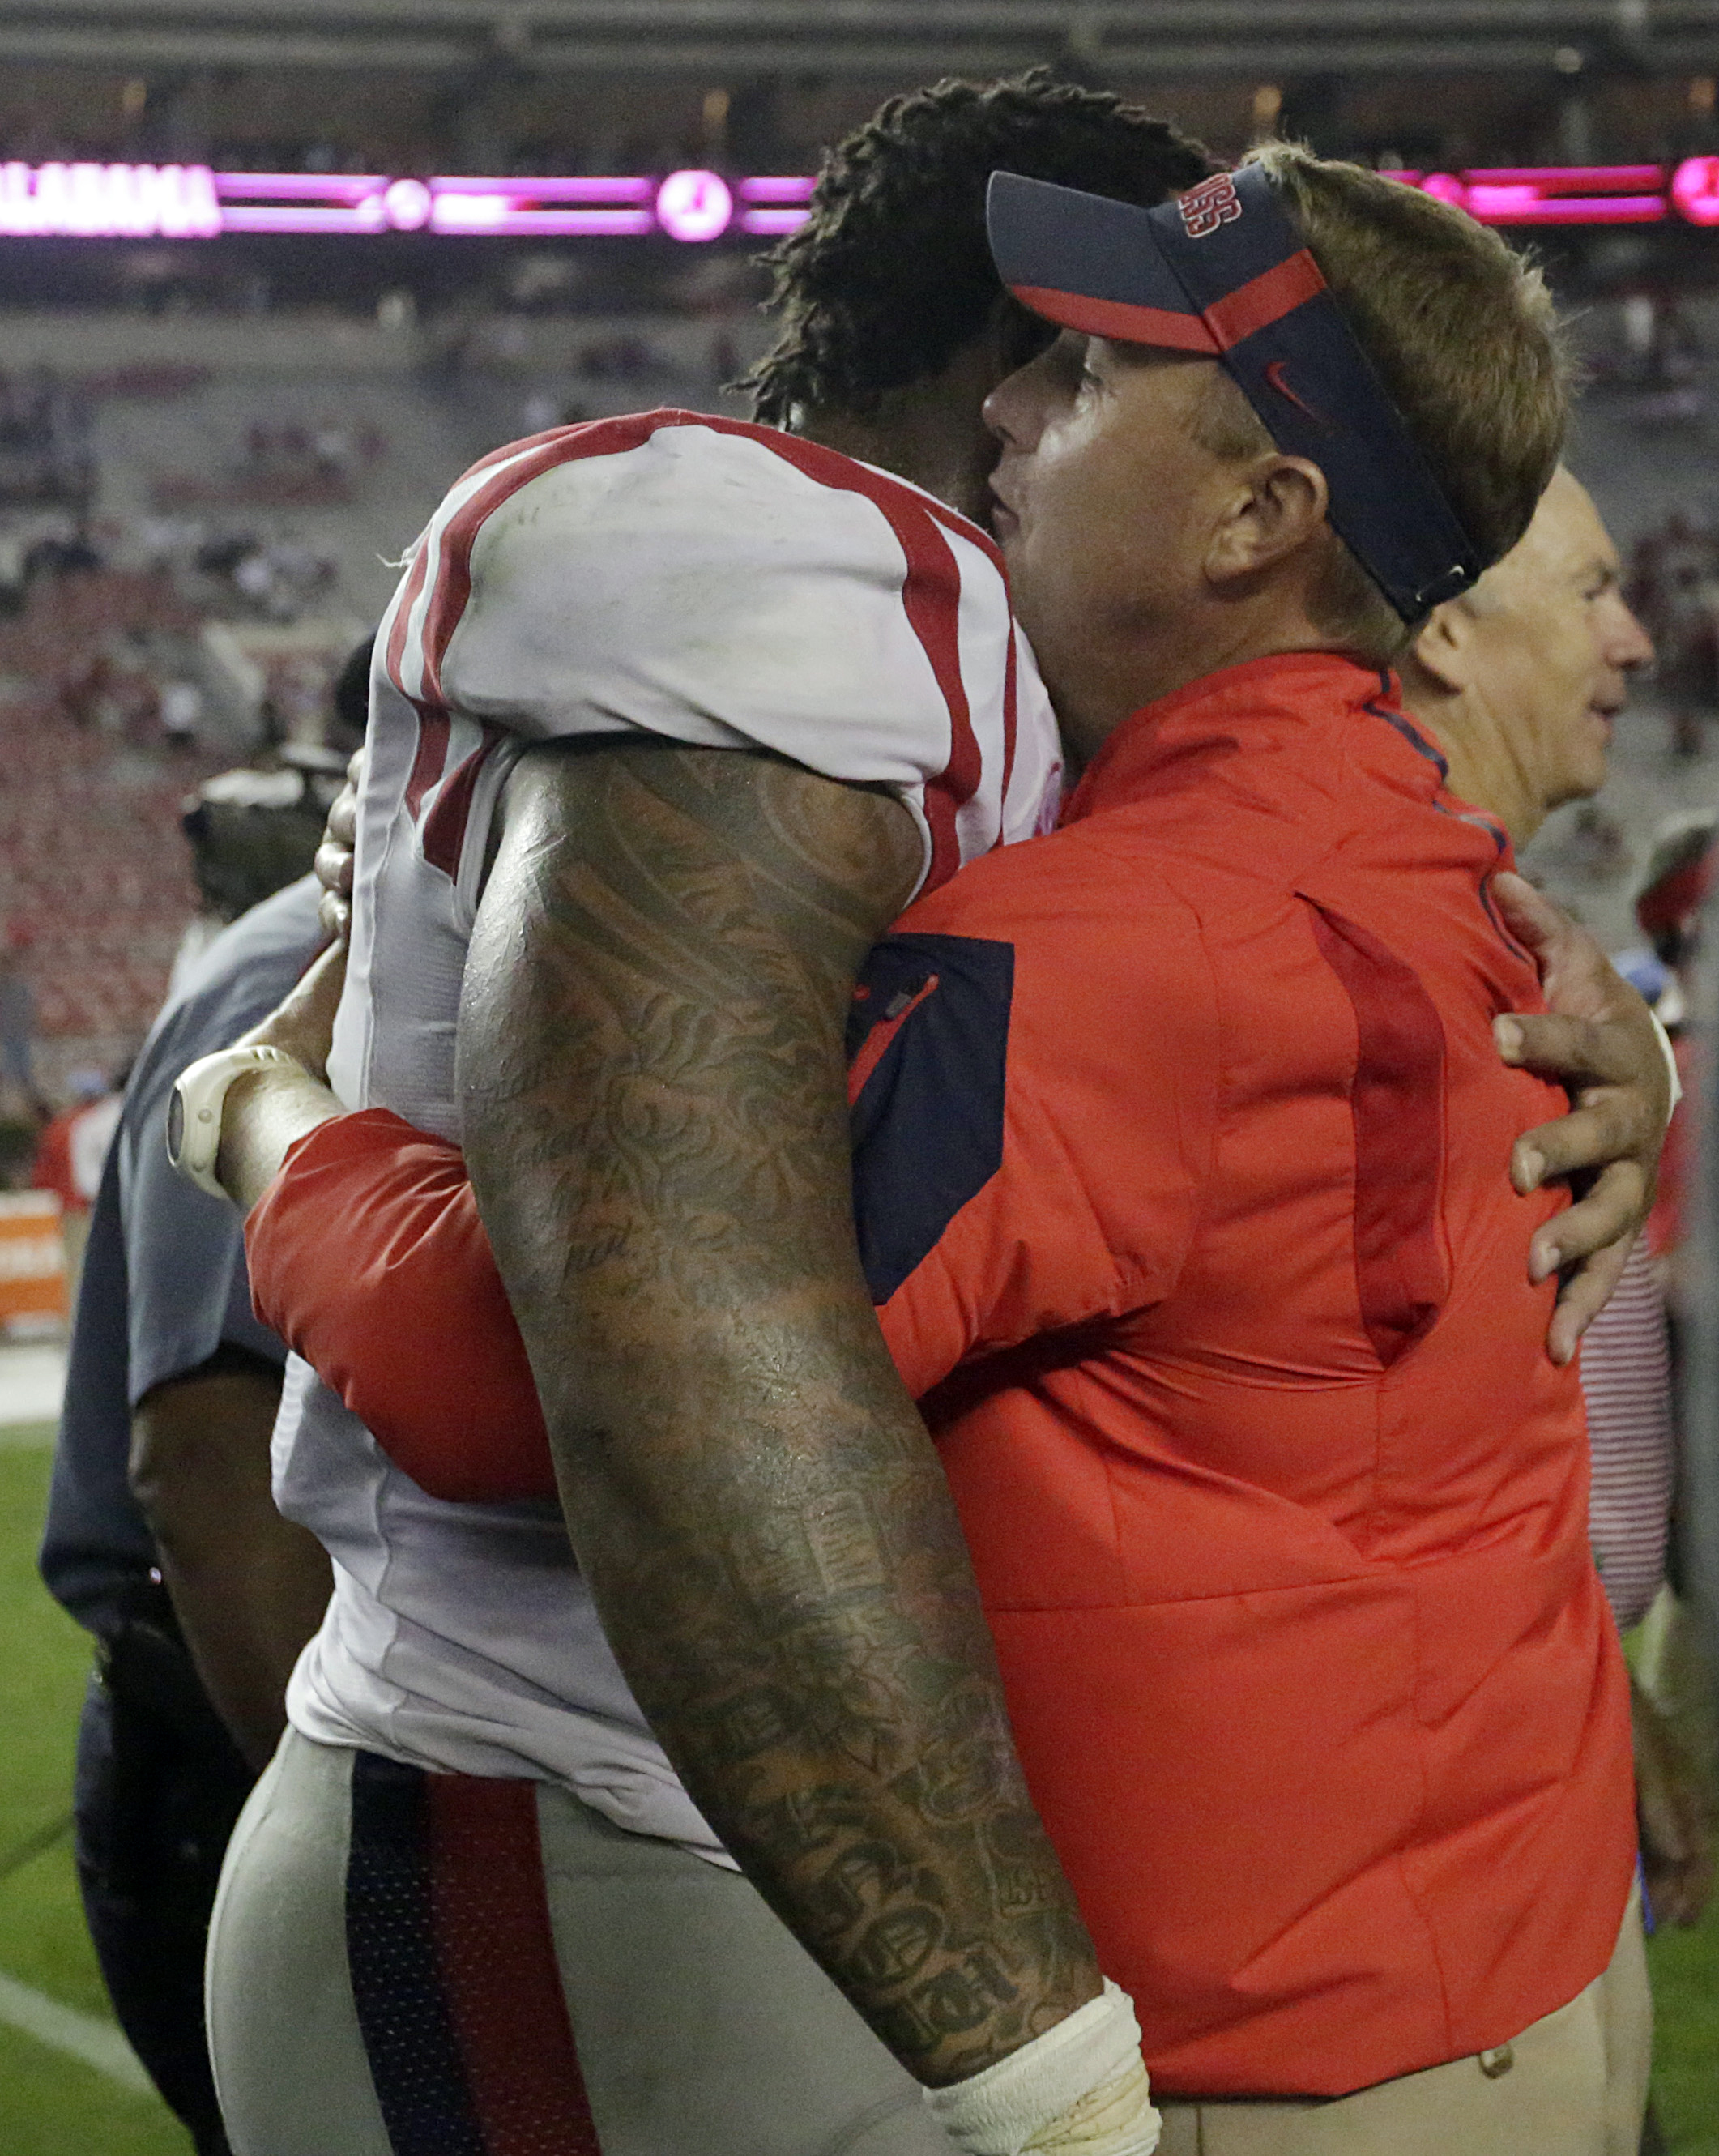 Mississippi defensive tackle Robert Nkemdiche, left, hugs Mississippi head coach Hugh Freeze after a win against Alabama after an NCAA college football game, Sunday, Sept. 20, 2015, in Tuscaloosa, Ala. Mississippi won 43-37. (AP Photo/Brynn Anderson)